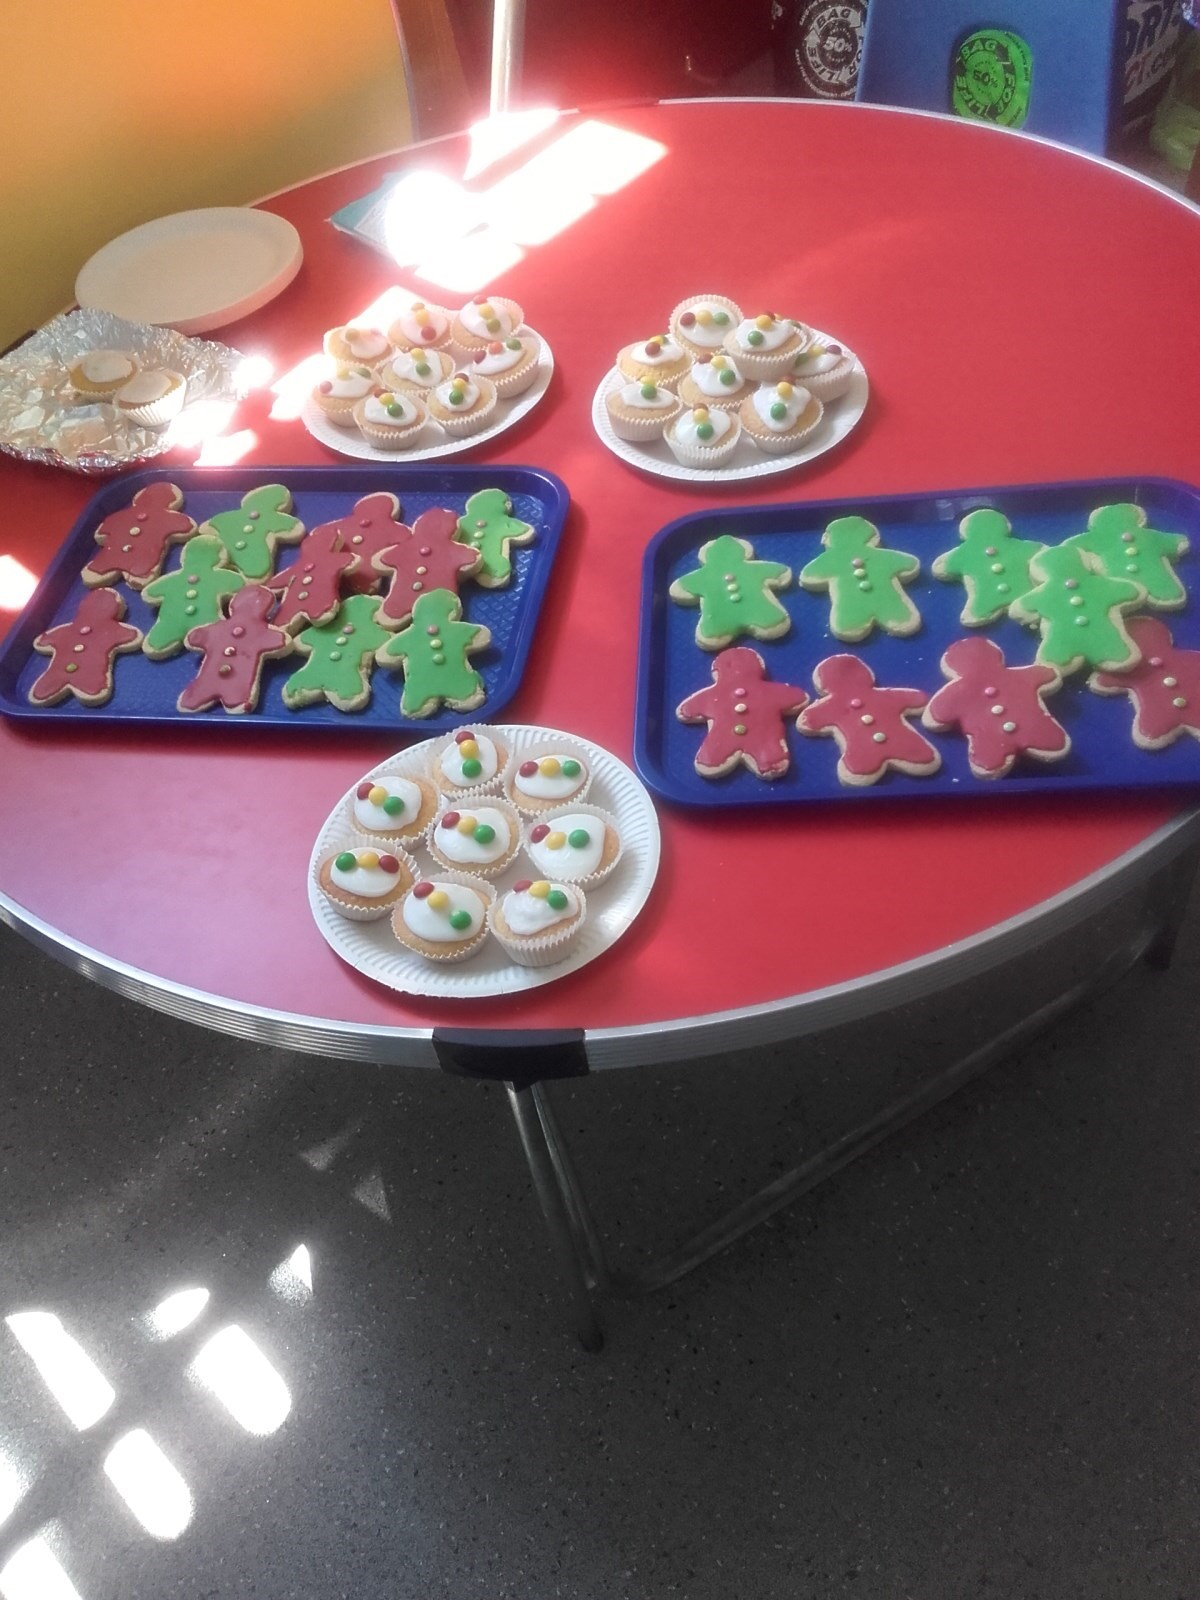 Our baking to raise funds for brake